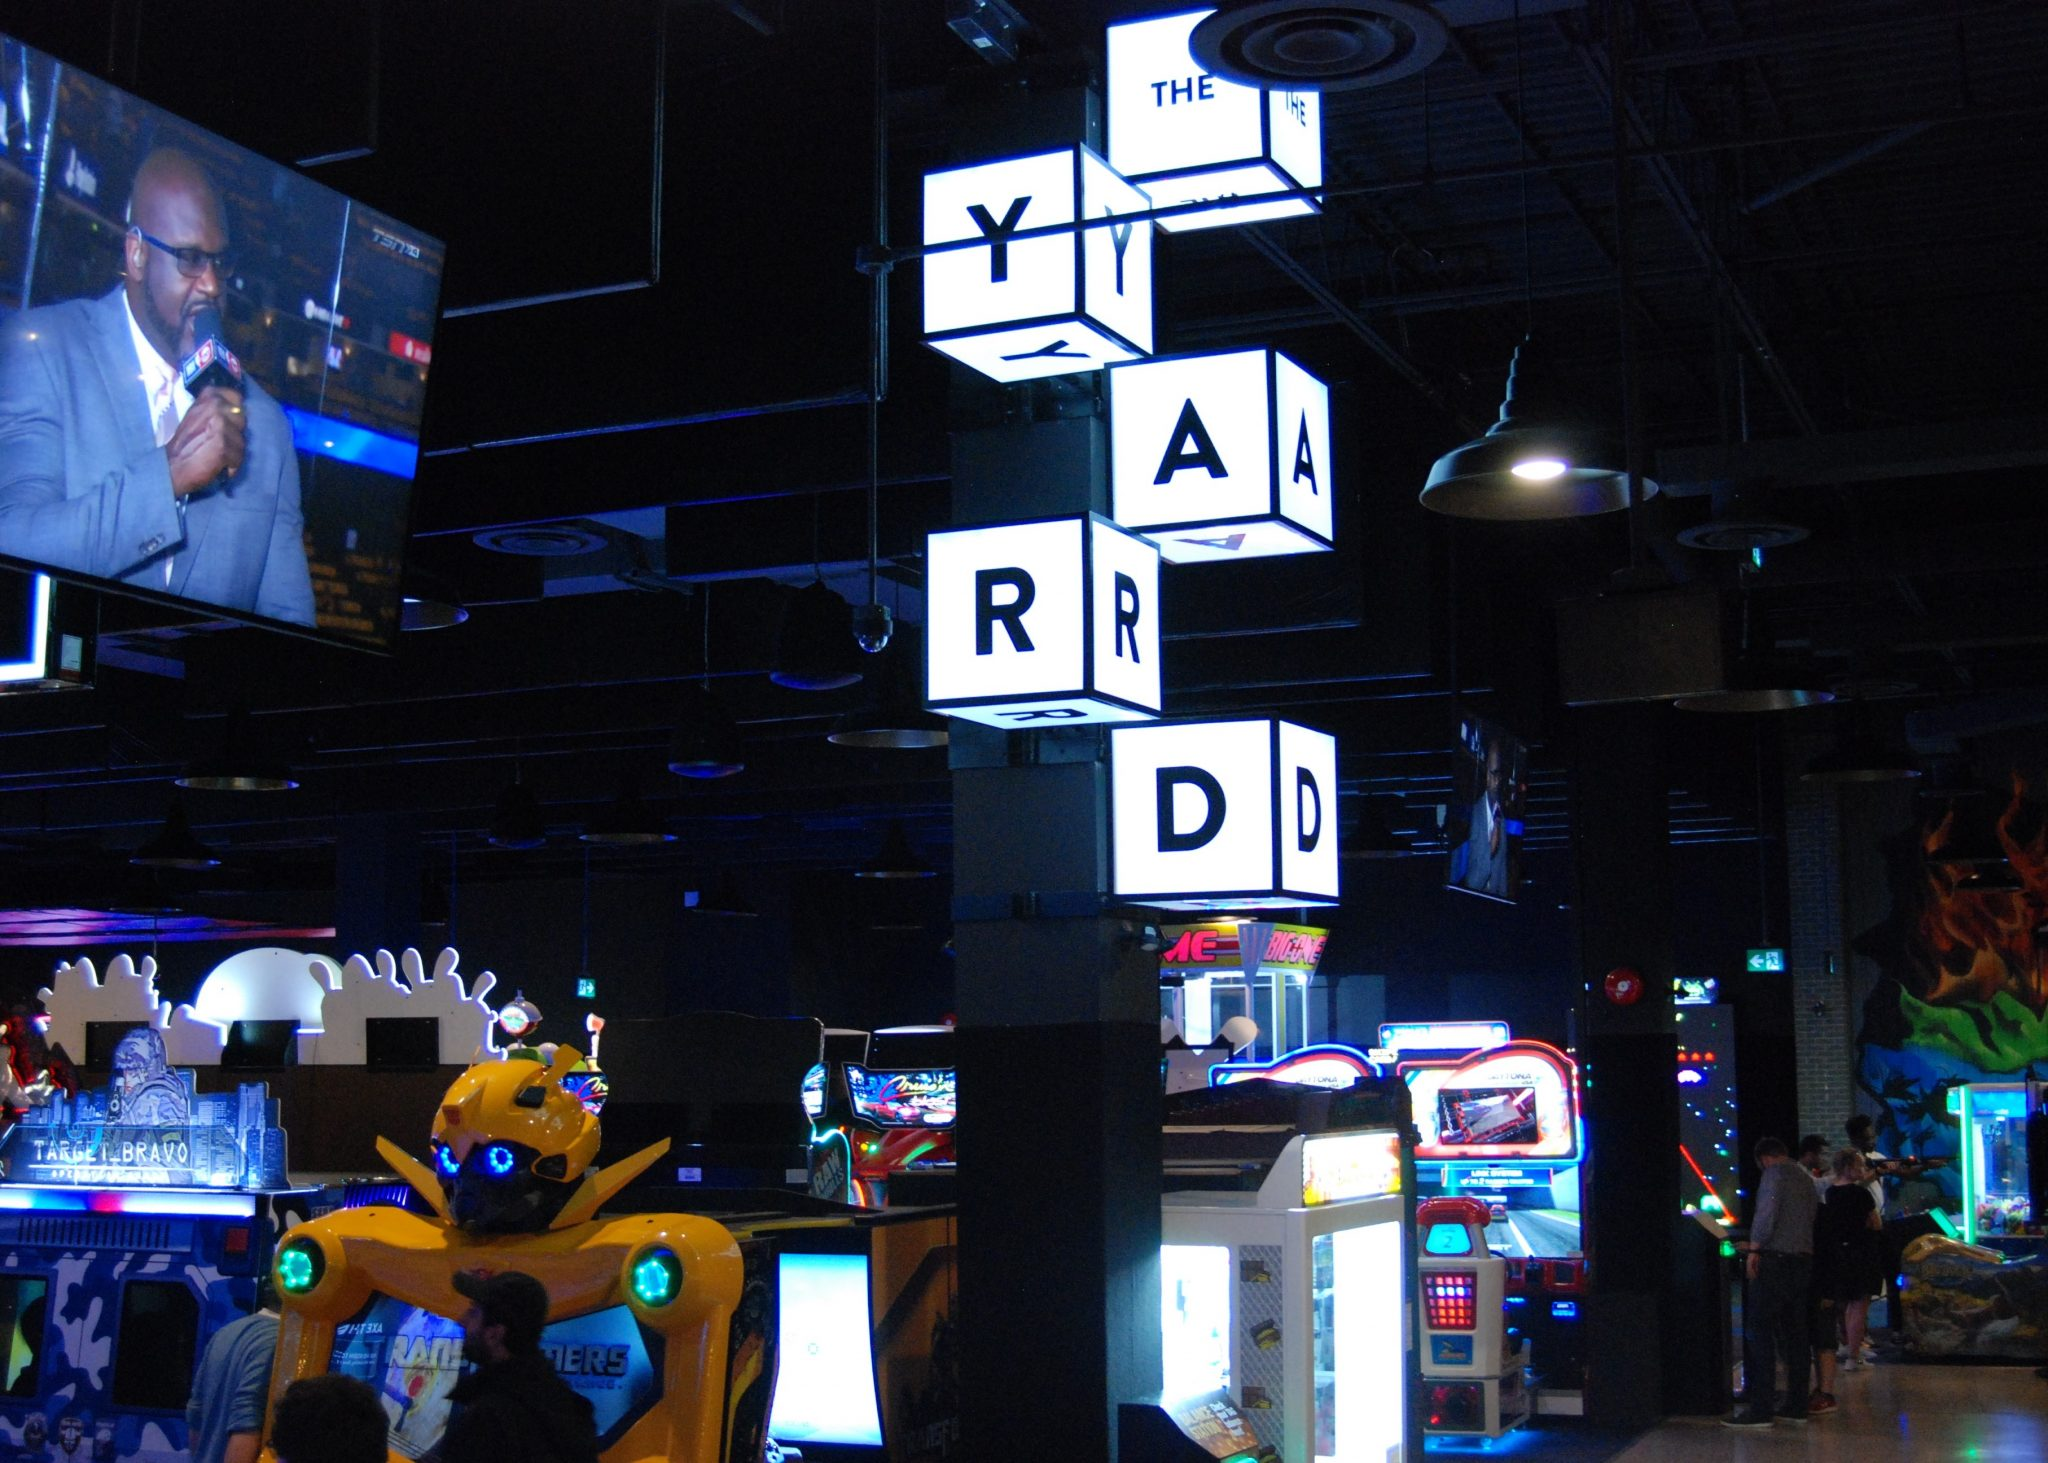 Satisfy your hunger for gaming at the Rec Room. London, Ontario's The Rec Room's The Yard, which features a variety of arcade games.Photo by Emily Stewart.